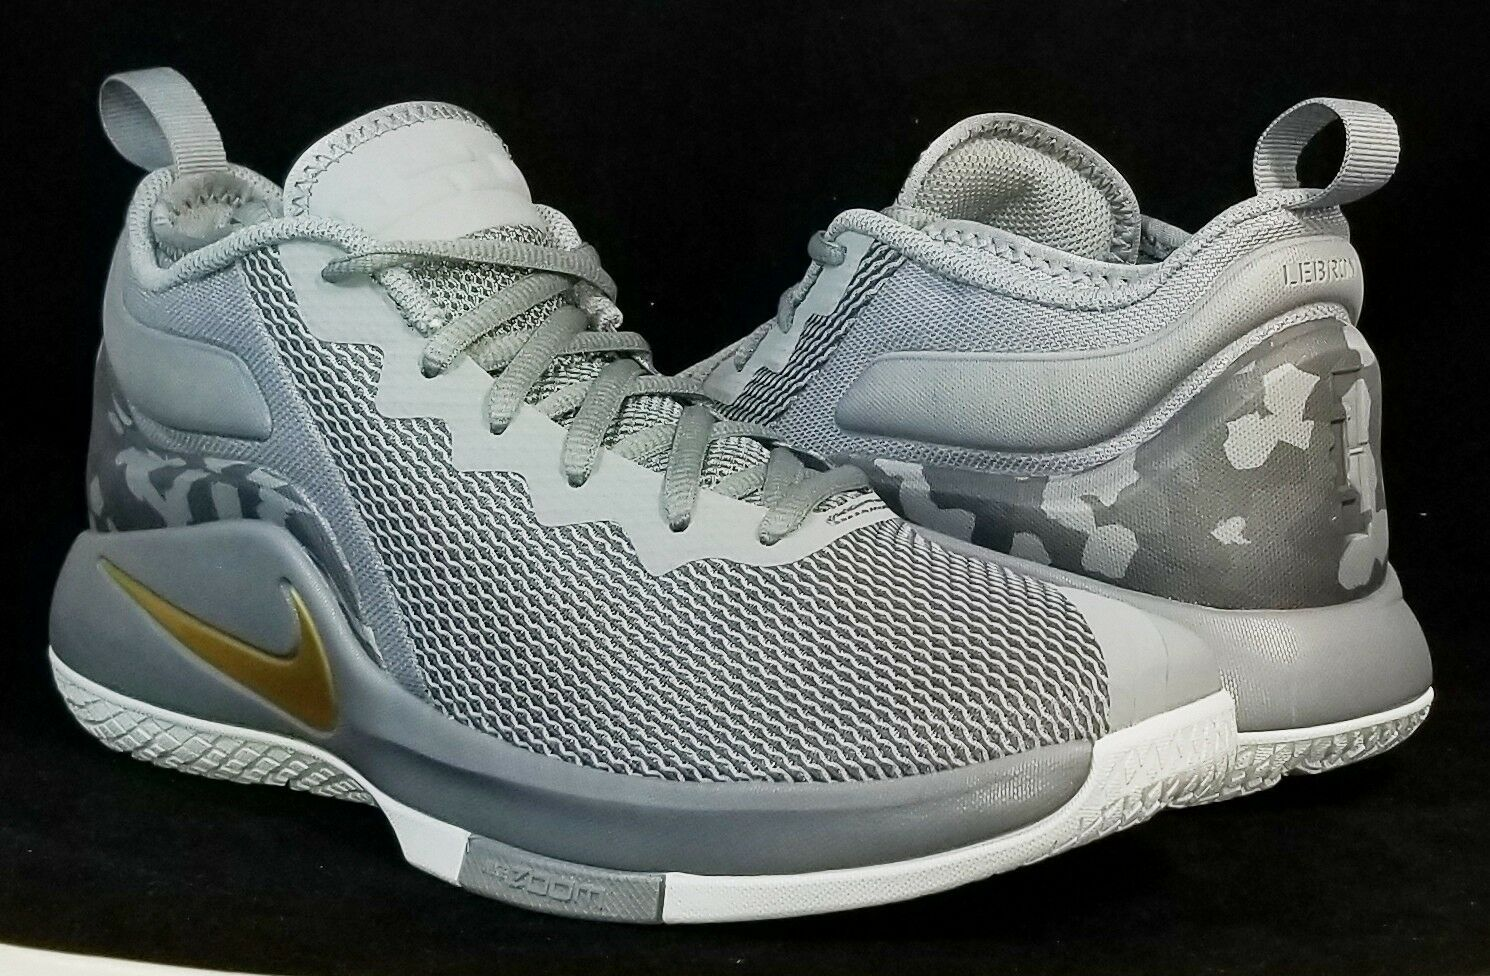 NIB NIKE Mens 10 LEBRON WITNESS II 942518 009 GREY GOLD BASKETBALL SHOES Price reduction New shoes for men and women, limited time discount